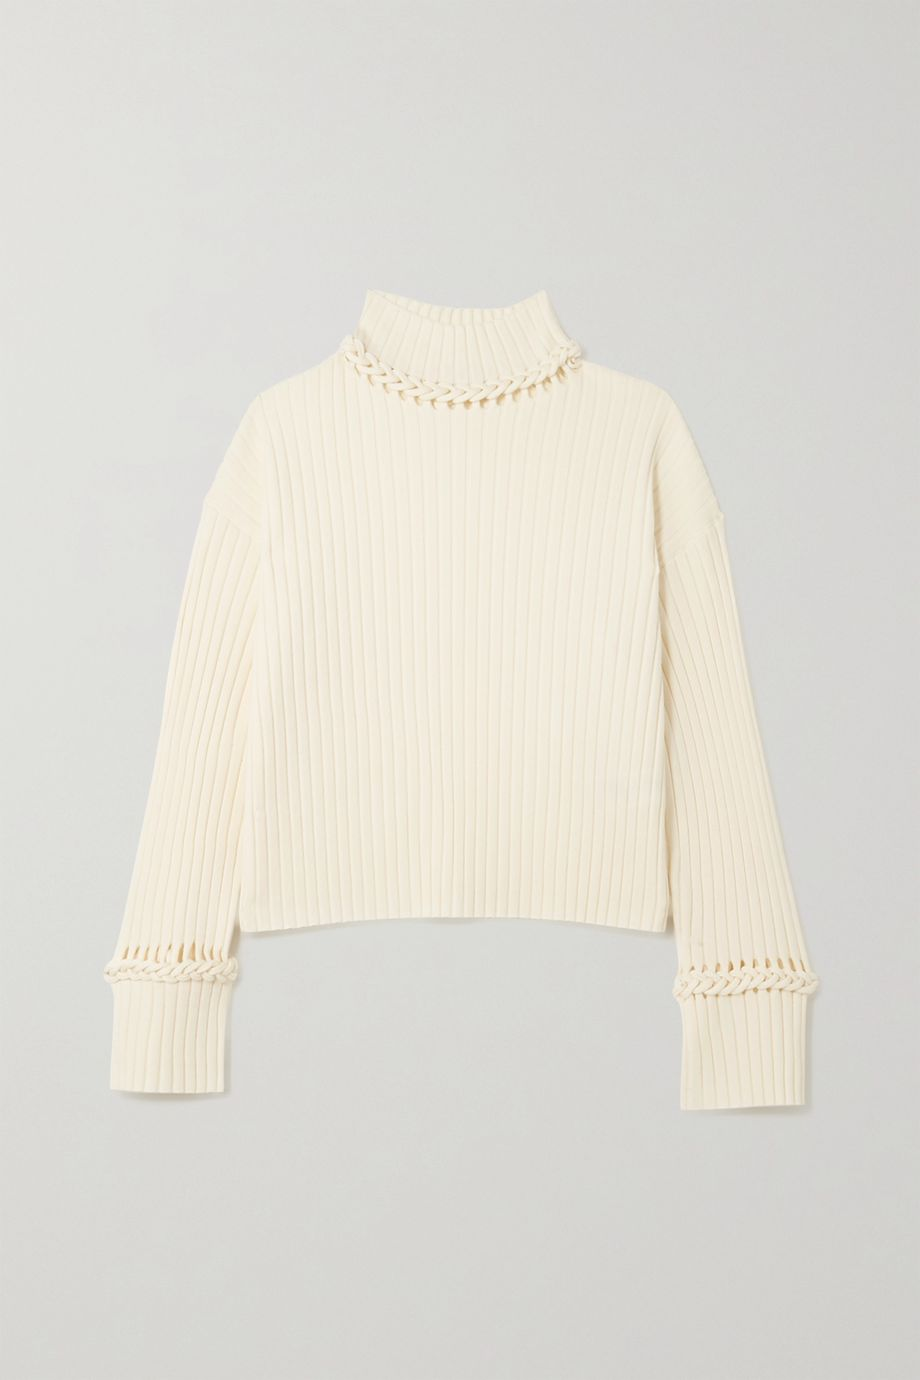 Dion Lee Braided ribbed merino wool-blend turtleneck sweater